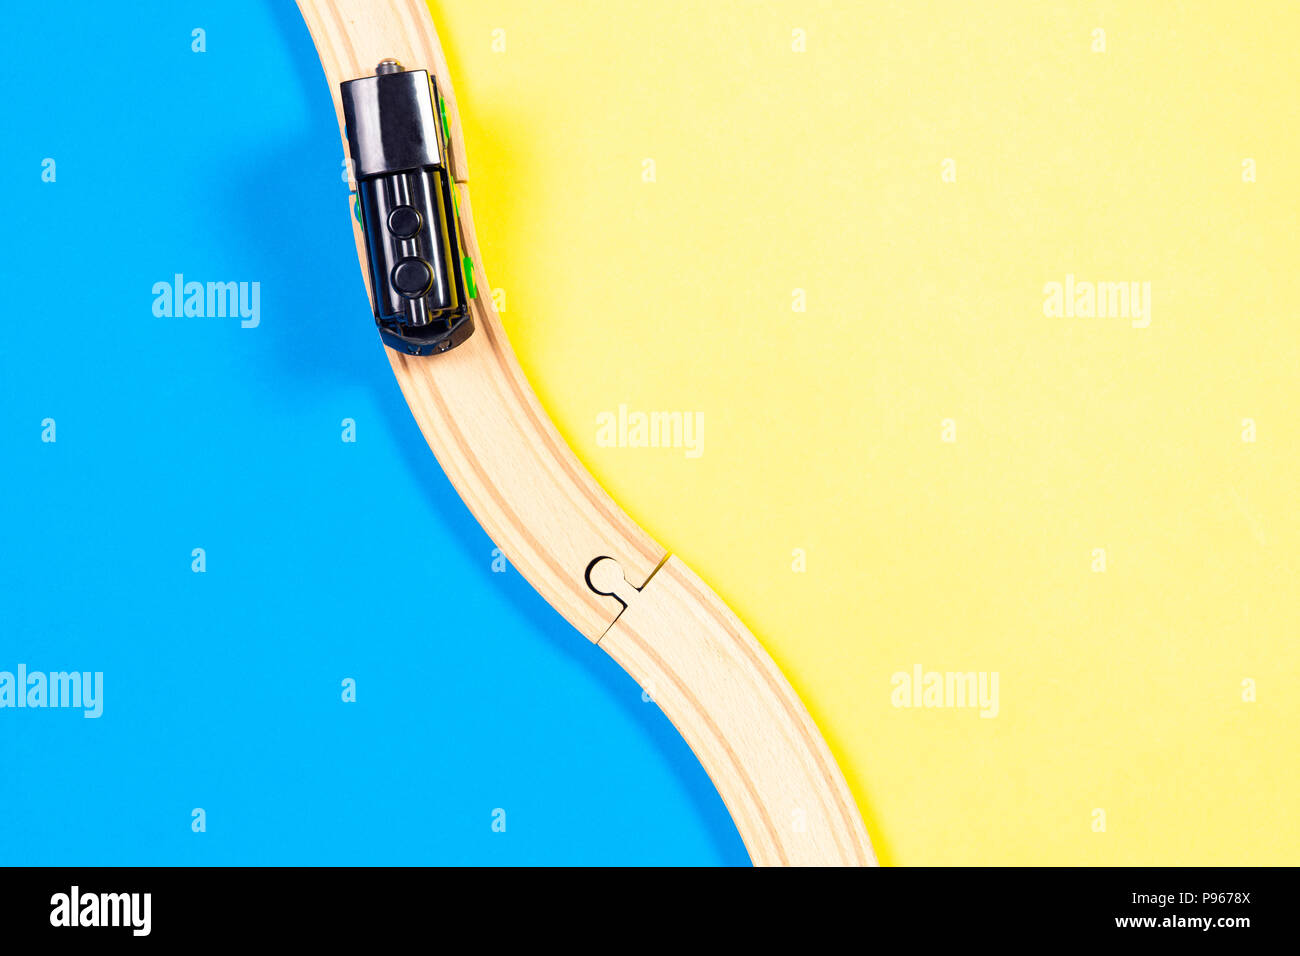 Toy train and curve wooden railways on colorful background - Stock Image